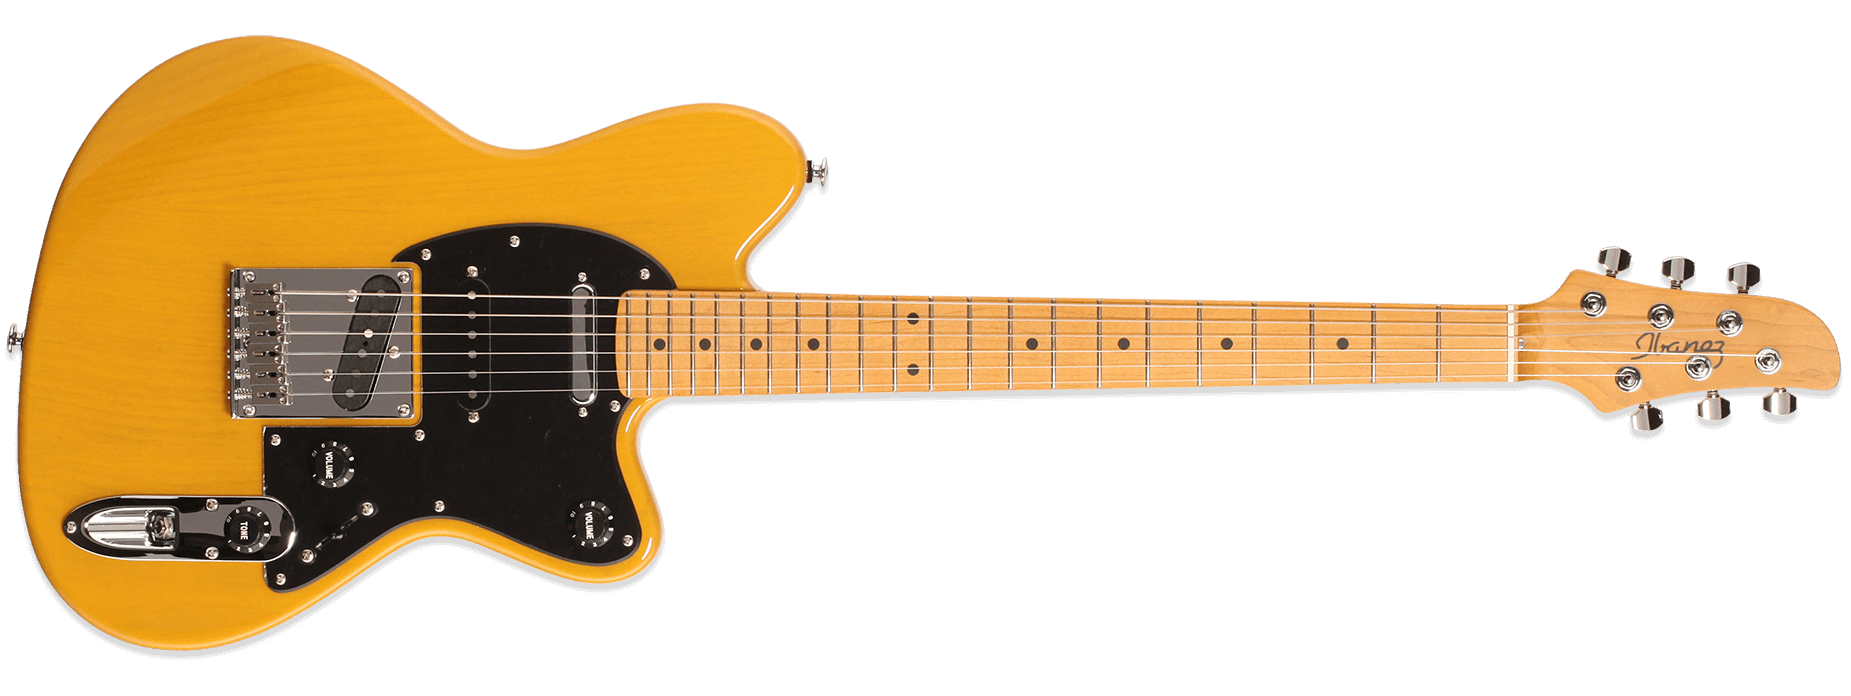 Ibanez Talman Prestige TM1803M Butterscotch Blonde